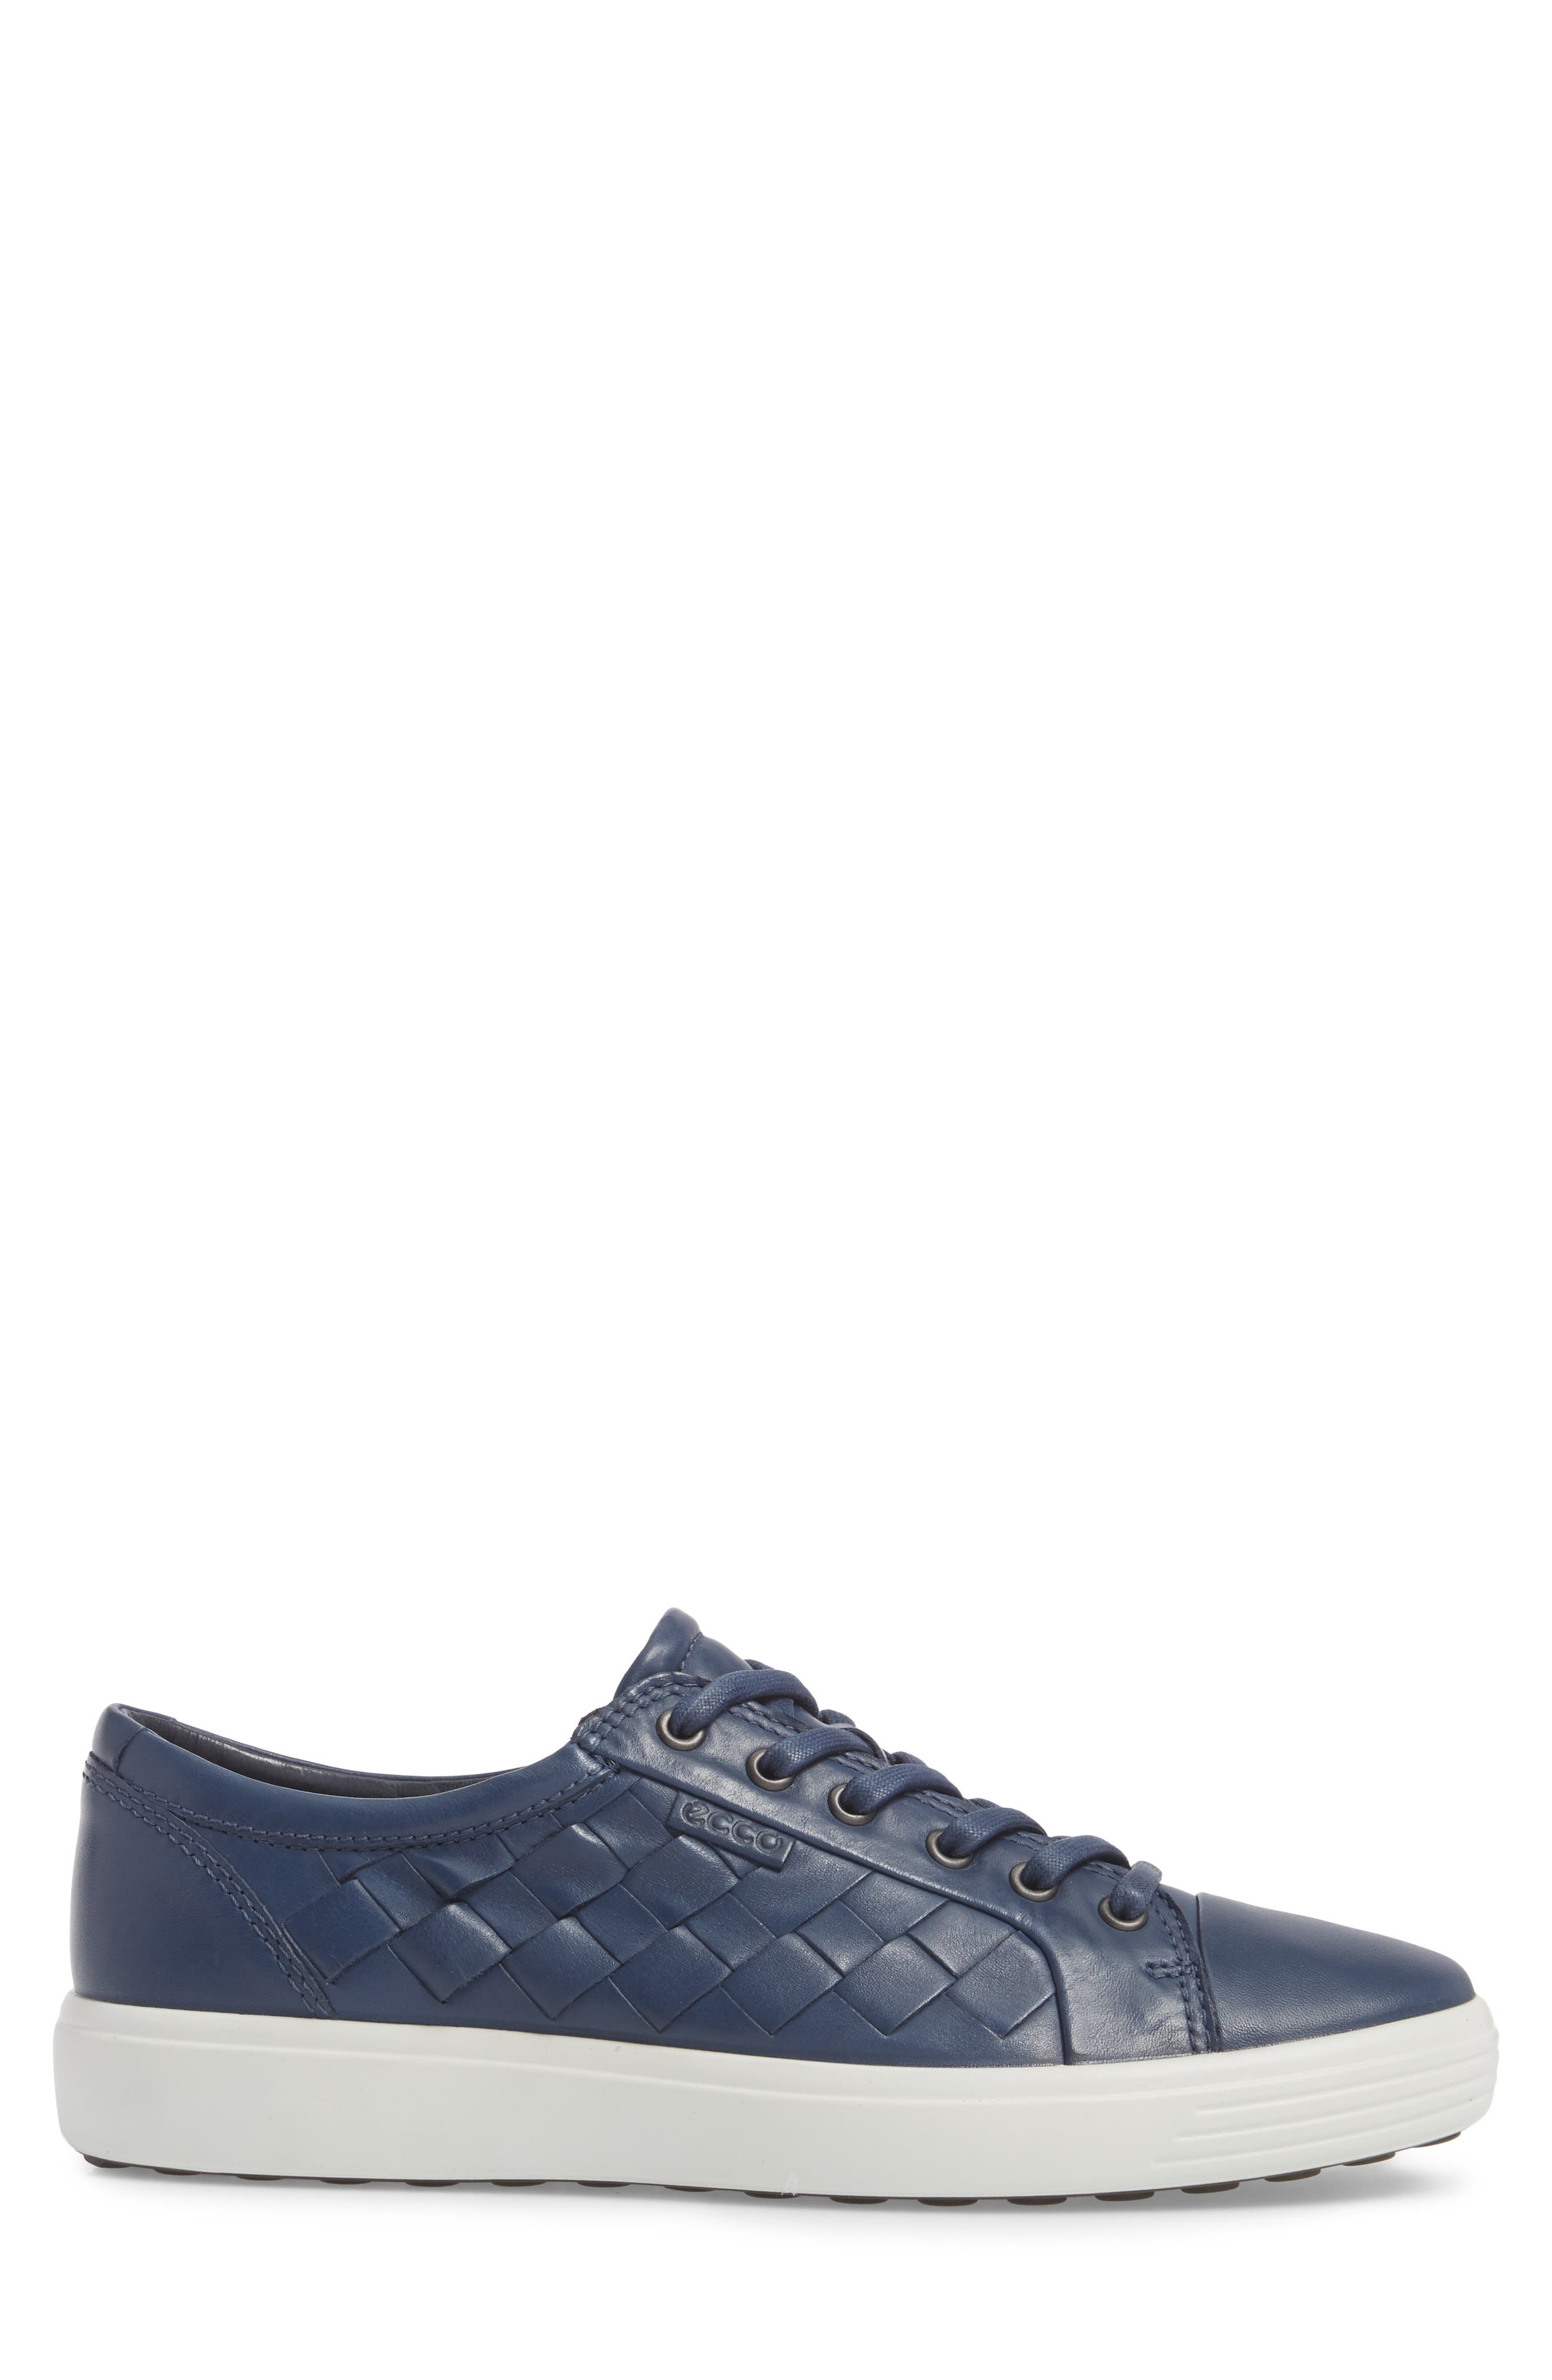 Soft 7 Woven Sneaker,                             Alternate thumbnail 3, color,                             True Navy Leather